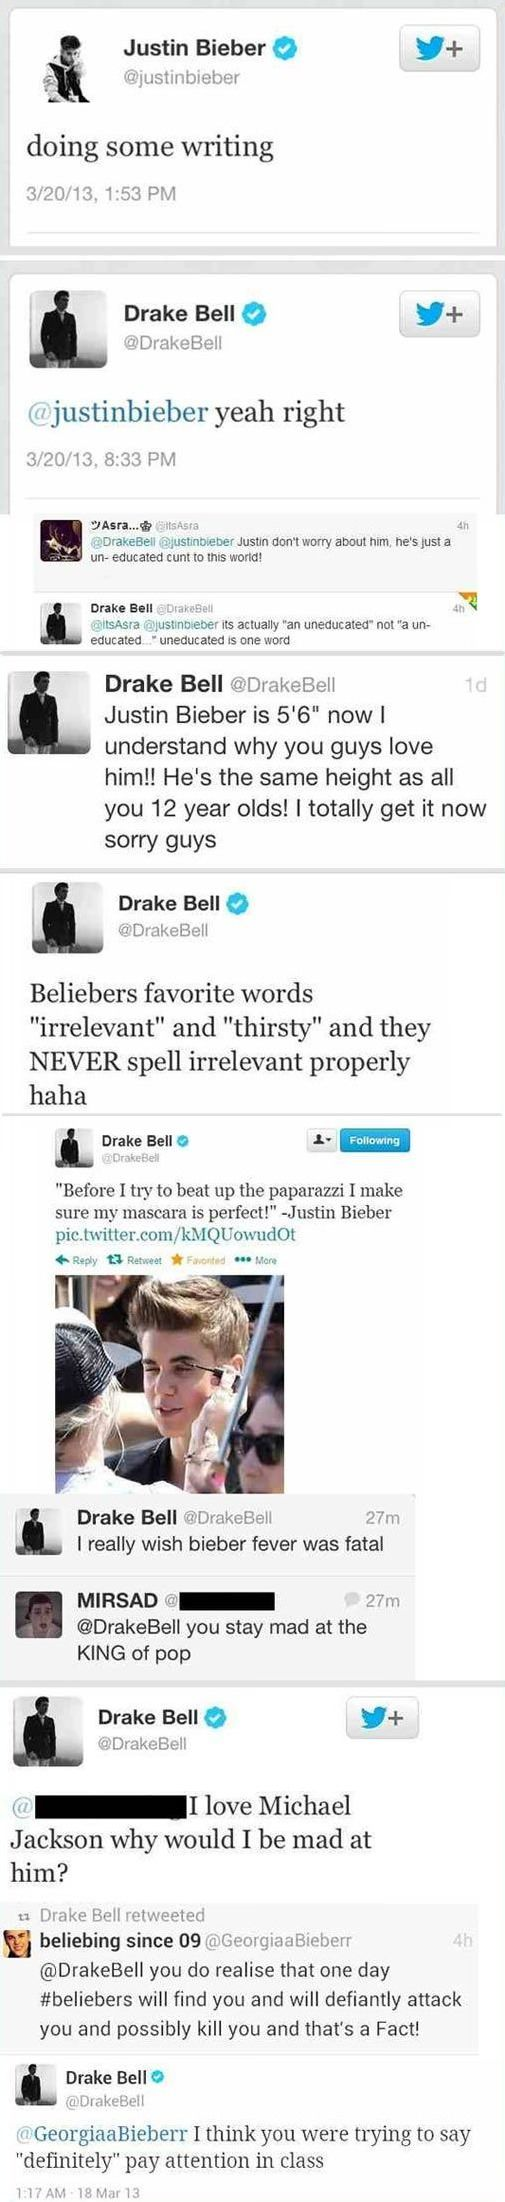 Drake Bell, saying what we all wanna say... <3